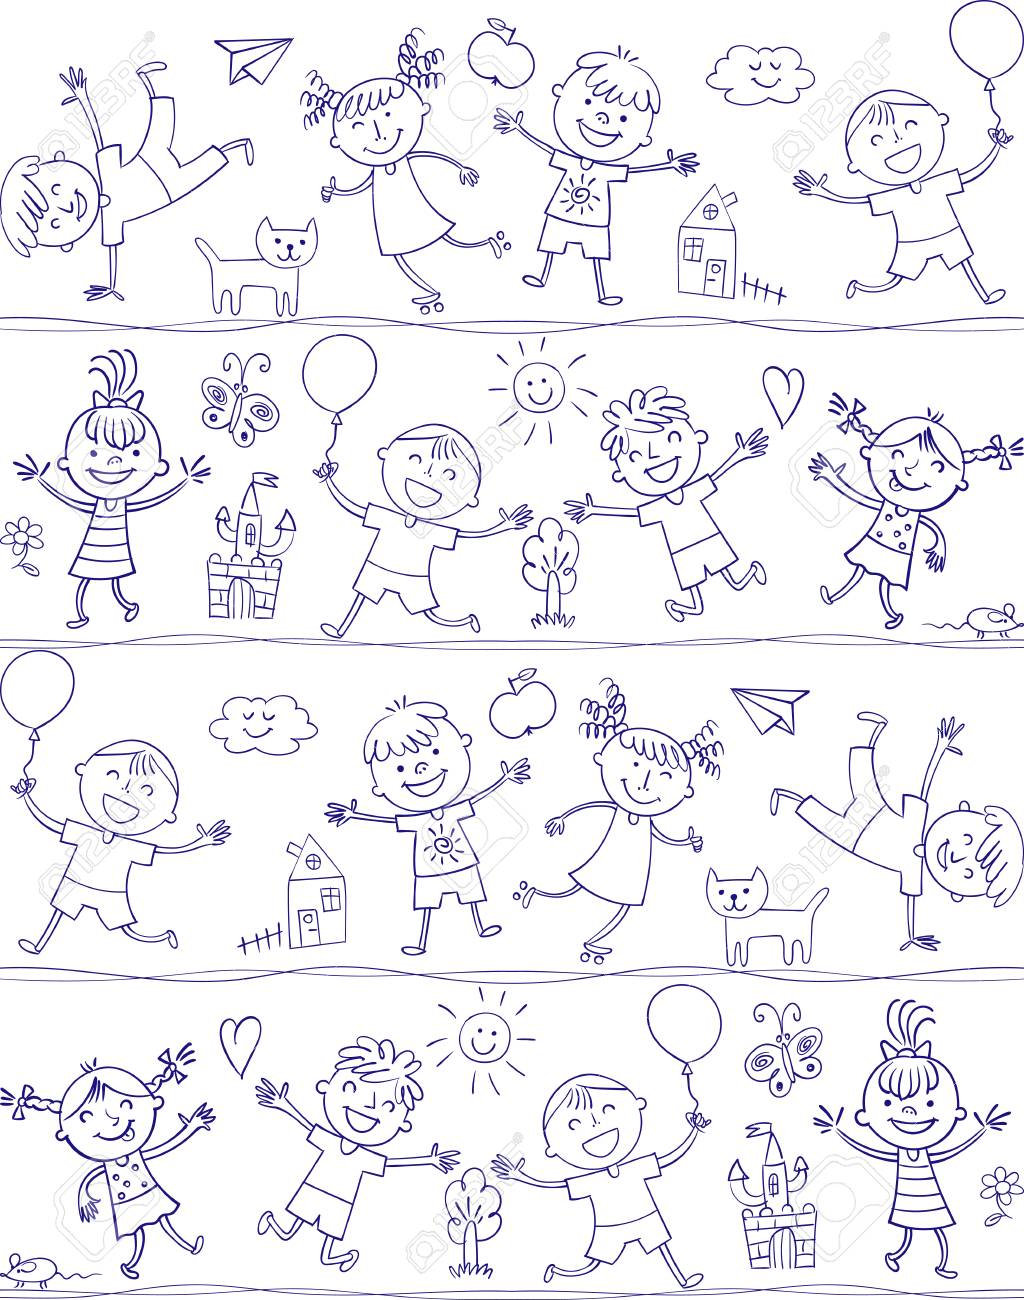 happy kid cartoon doodle in the style of childrens drawings seamless pattern freehand - Kid Cartoon Drawing